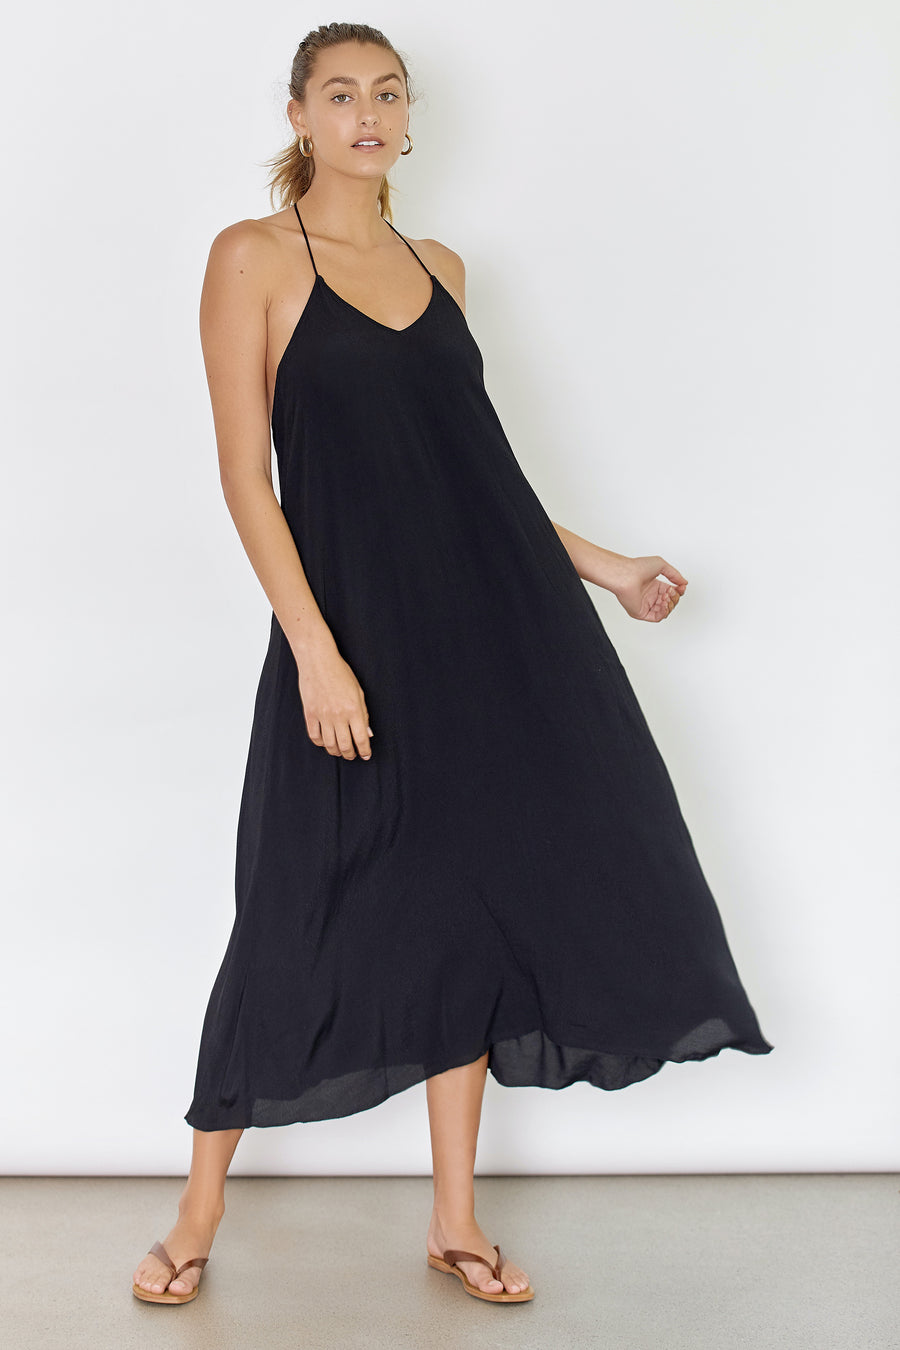 SUNSEEKER DRESS - BLACK